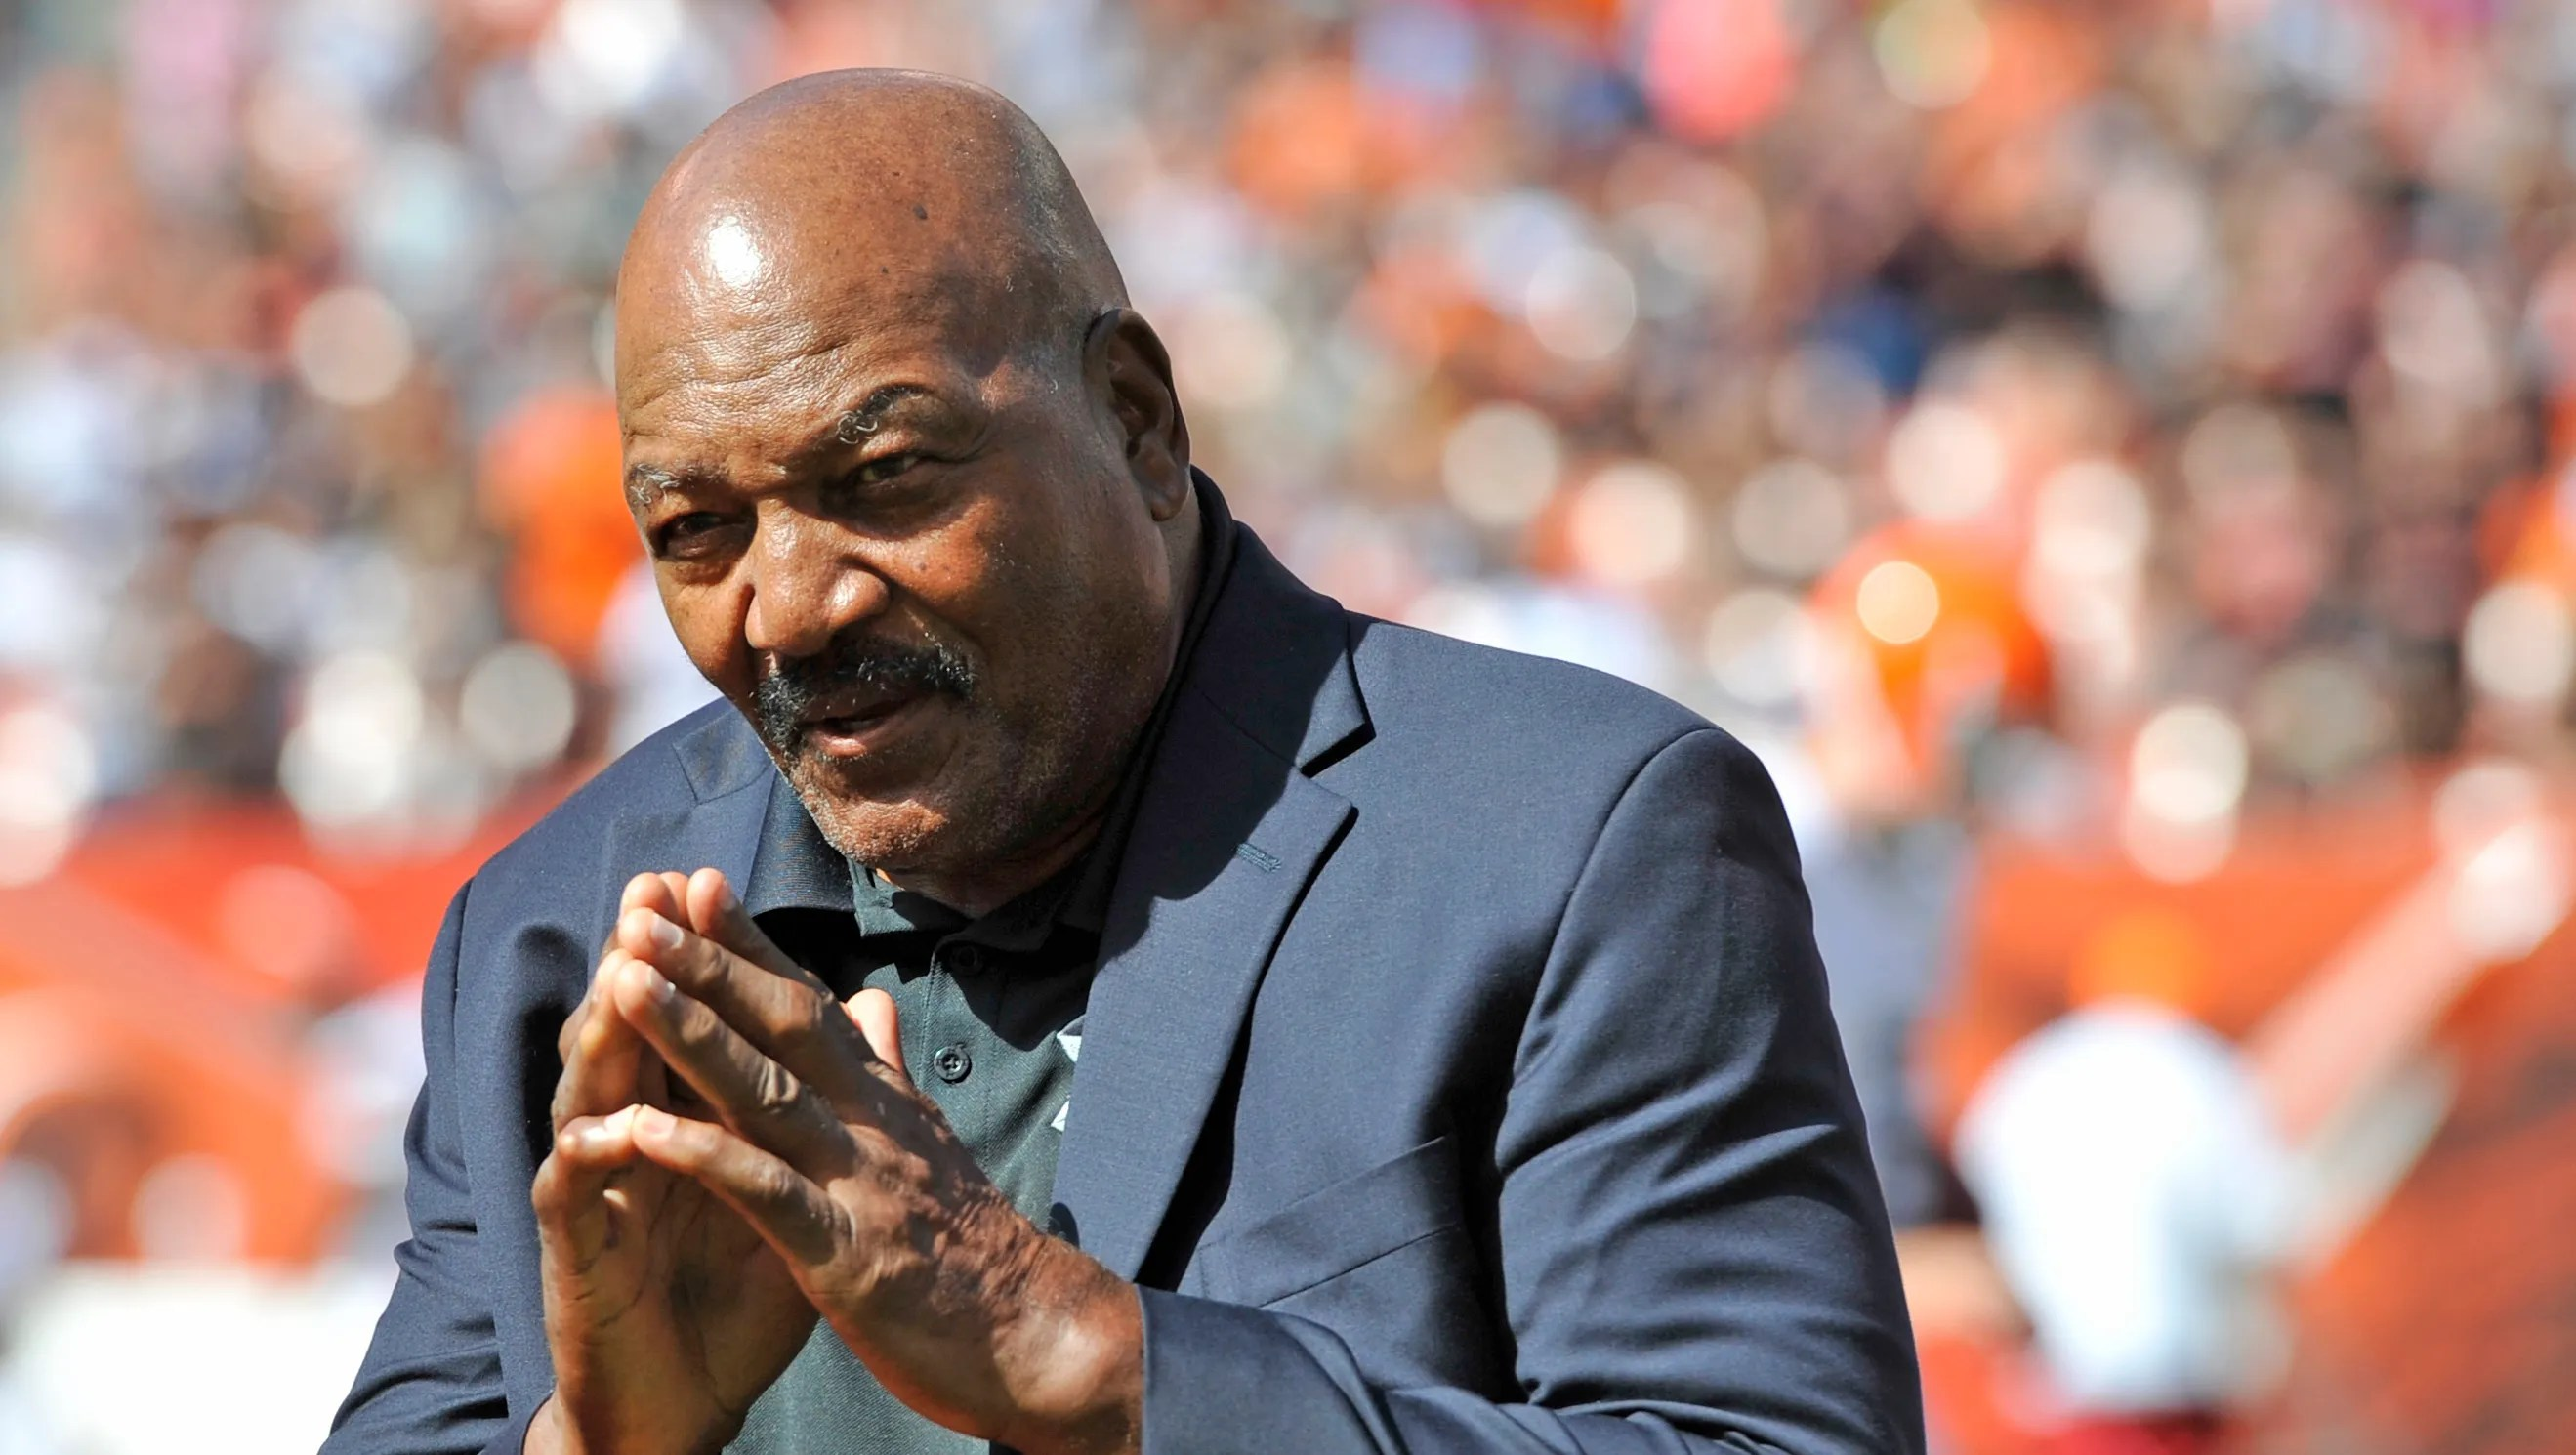 Jim Brown Supports Nfl Players But Would Not Kneel During